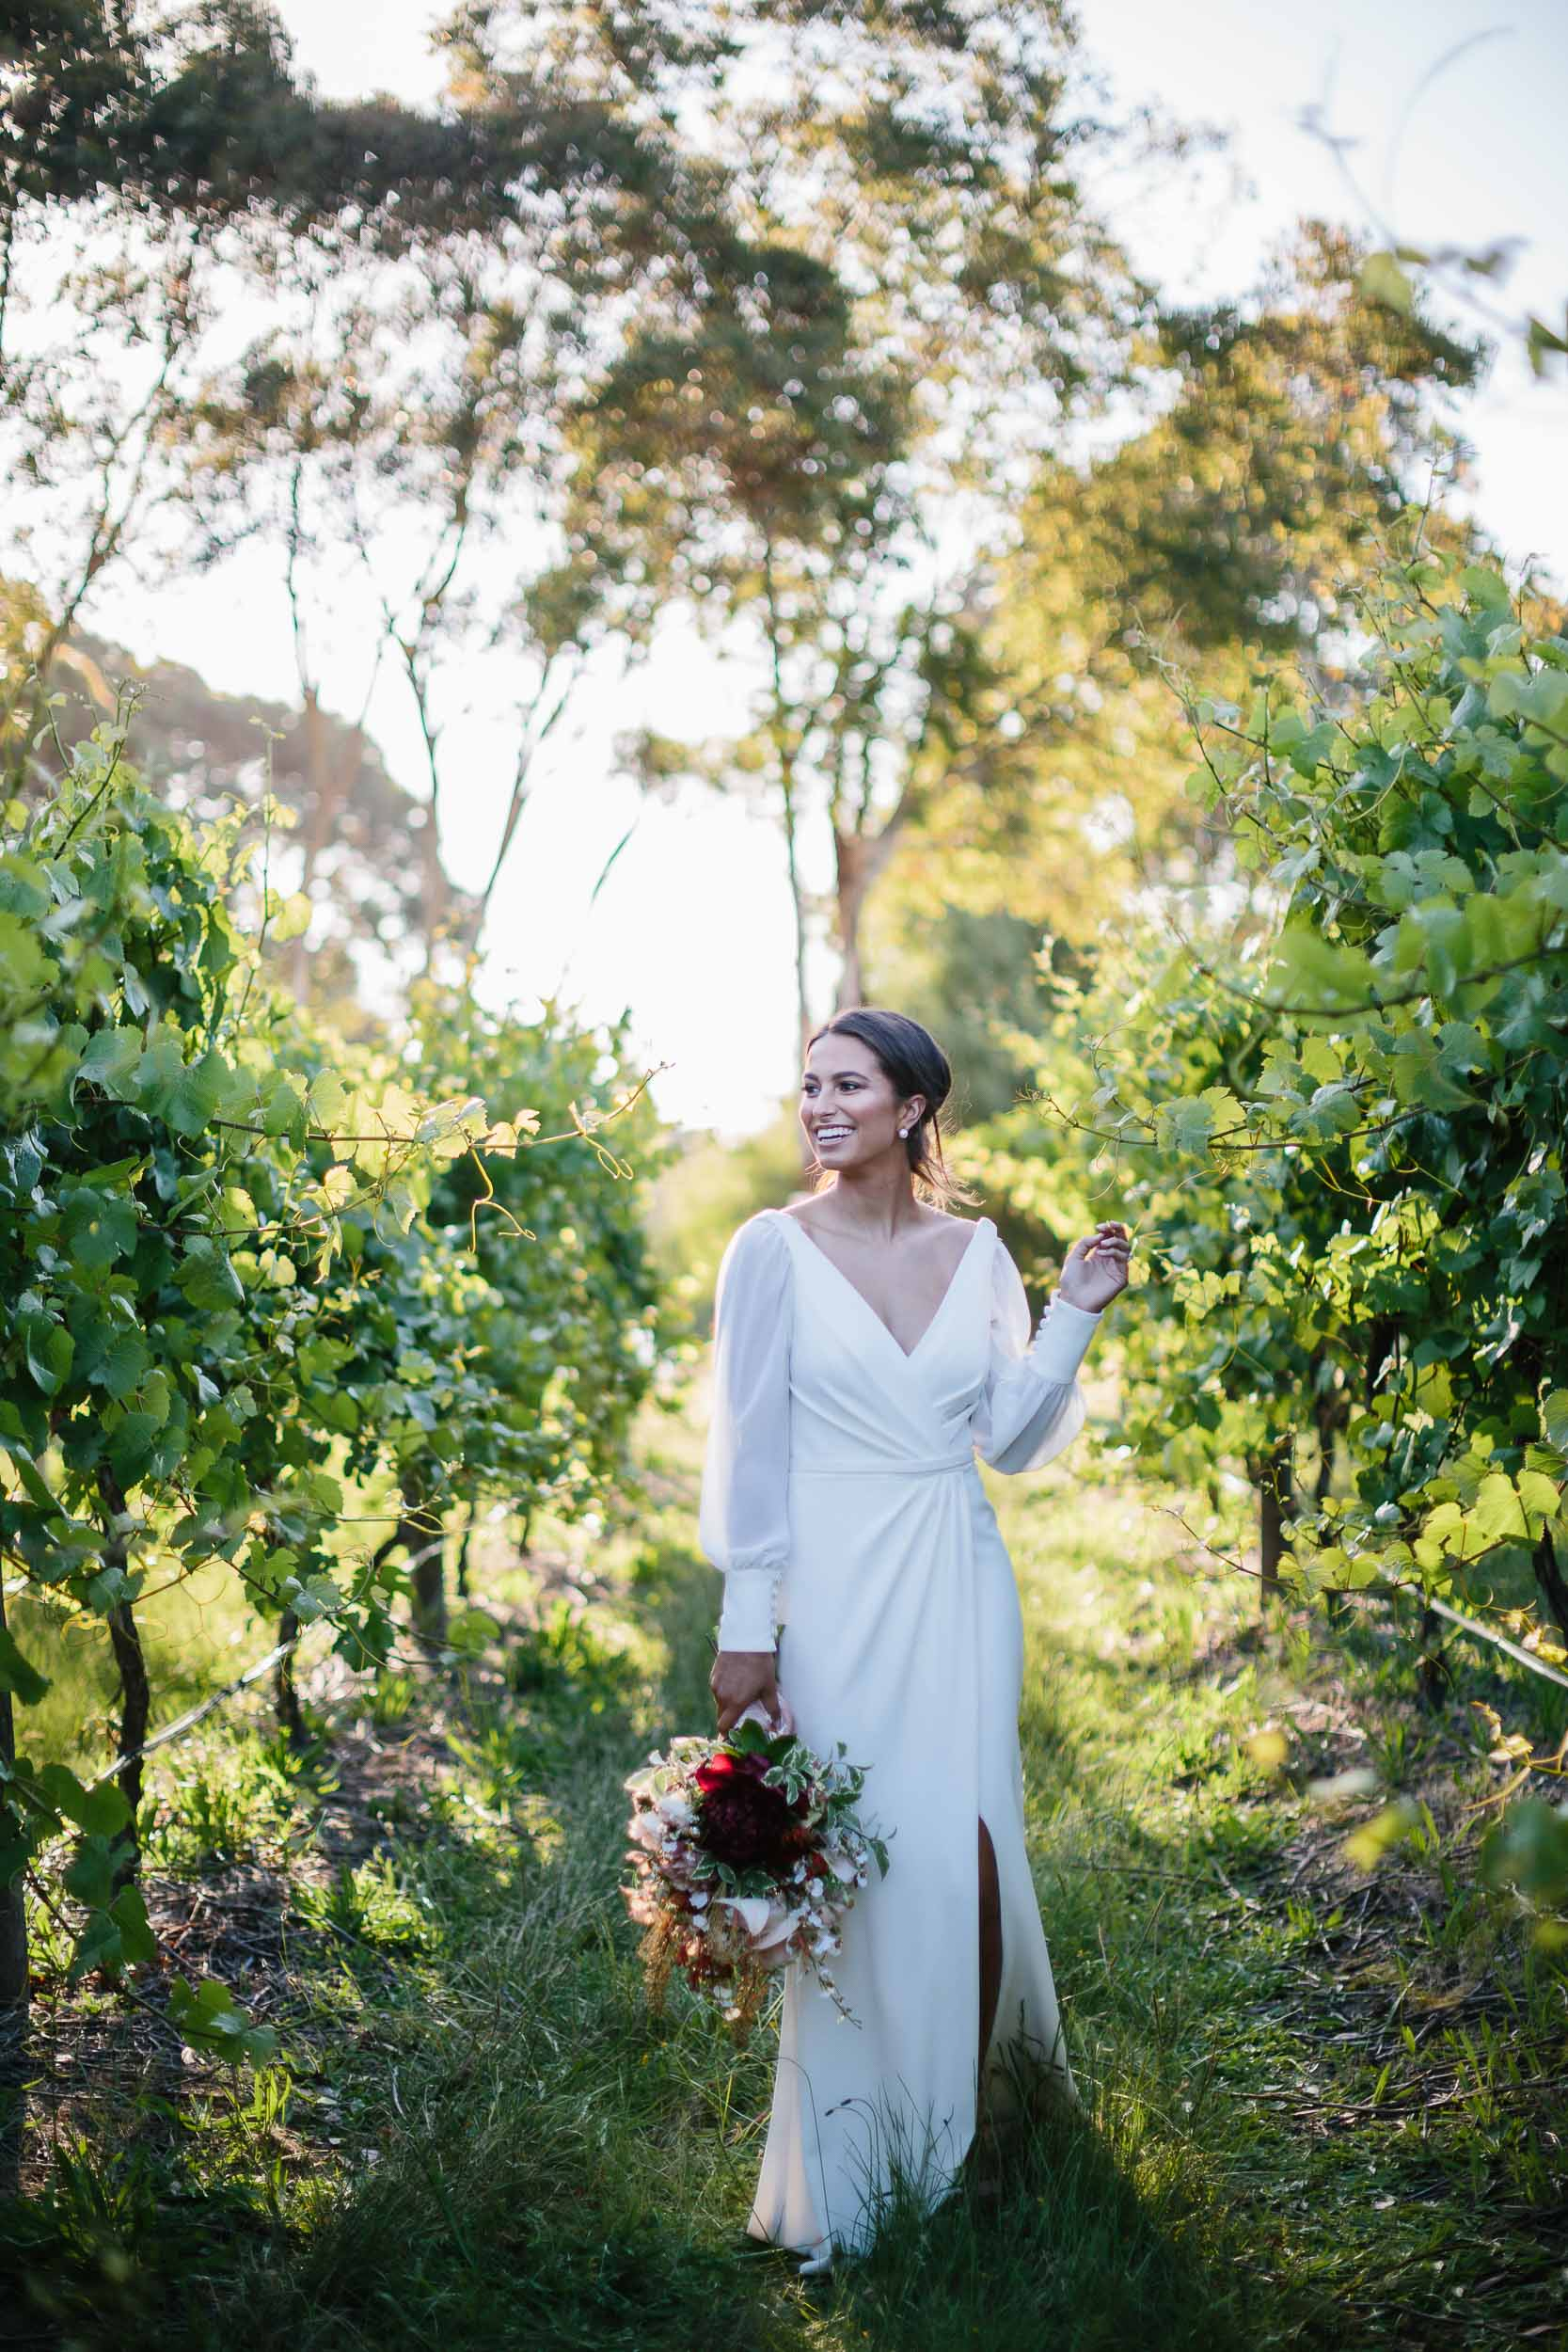 Kas-Richards-Wedding-Ediorial-Photographer-Mornington-Peninsula-Winery-Wedding-Karen-Willis-Holmes-Gown-Pop-up-with-Style-Planners-14.jpg